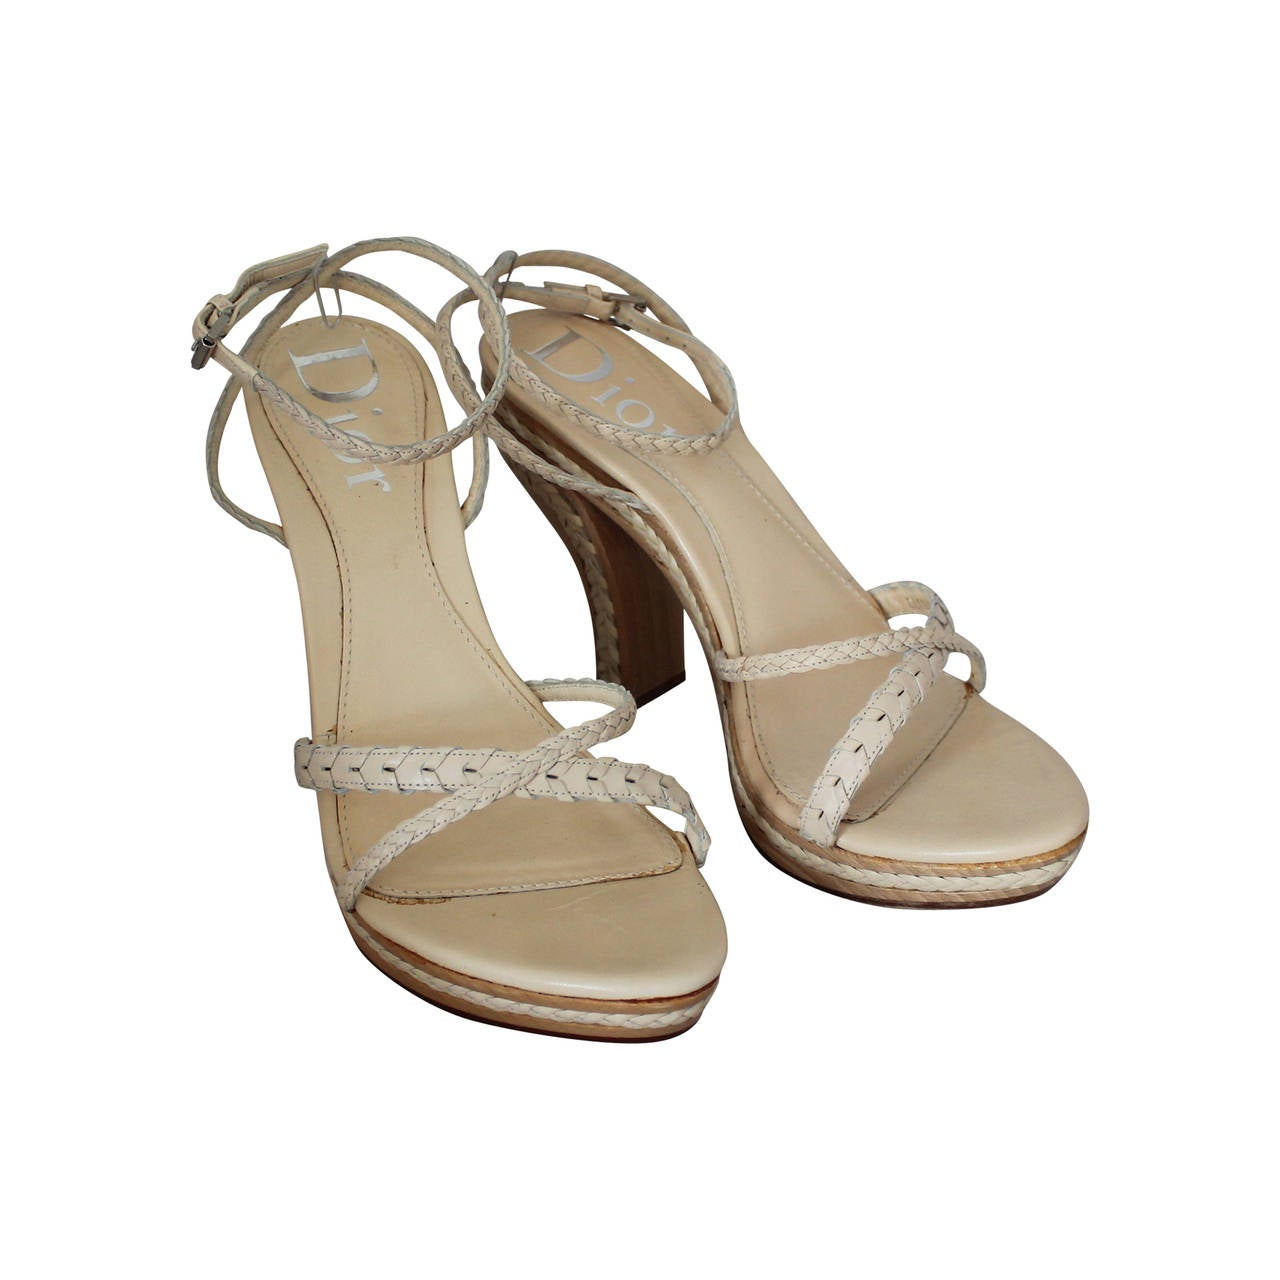 Christian Dior Creme Braided Leather Woodstack Heel - 38.5